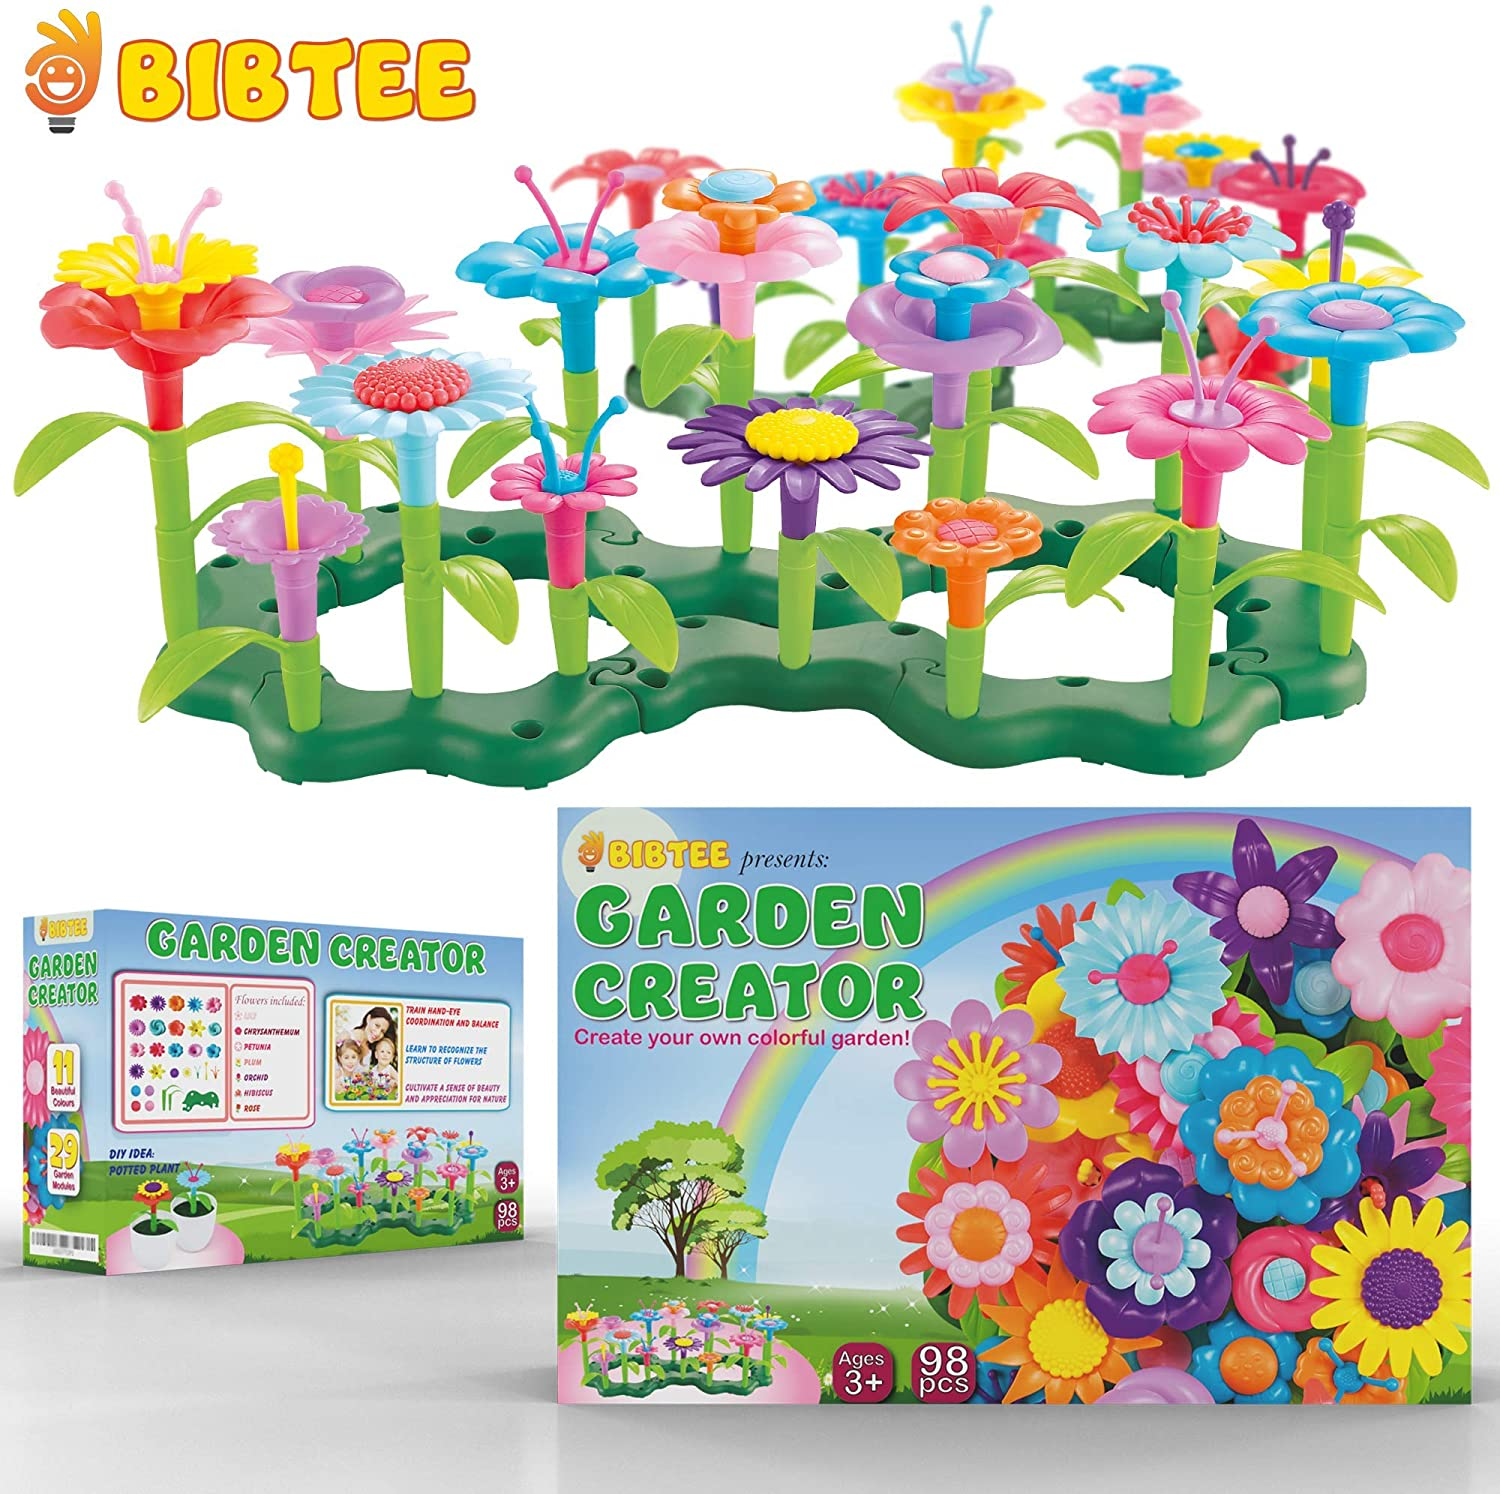 B Flower Garden Building Toys - Stackable Flower Building Toy Set - Fun Activity for Kids to Build a Garden - Stimulate The Imagination with This Pretend Kids Gardening Set - for Ages 3 to 8